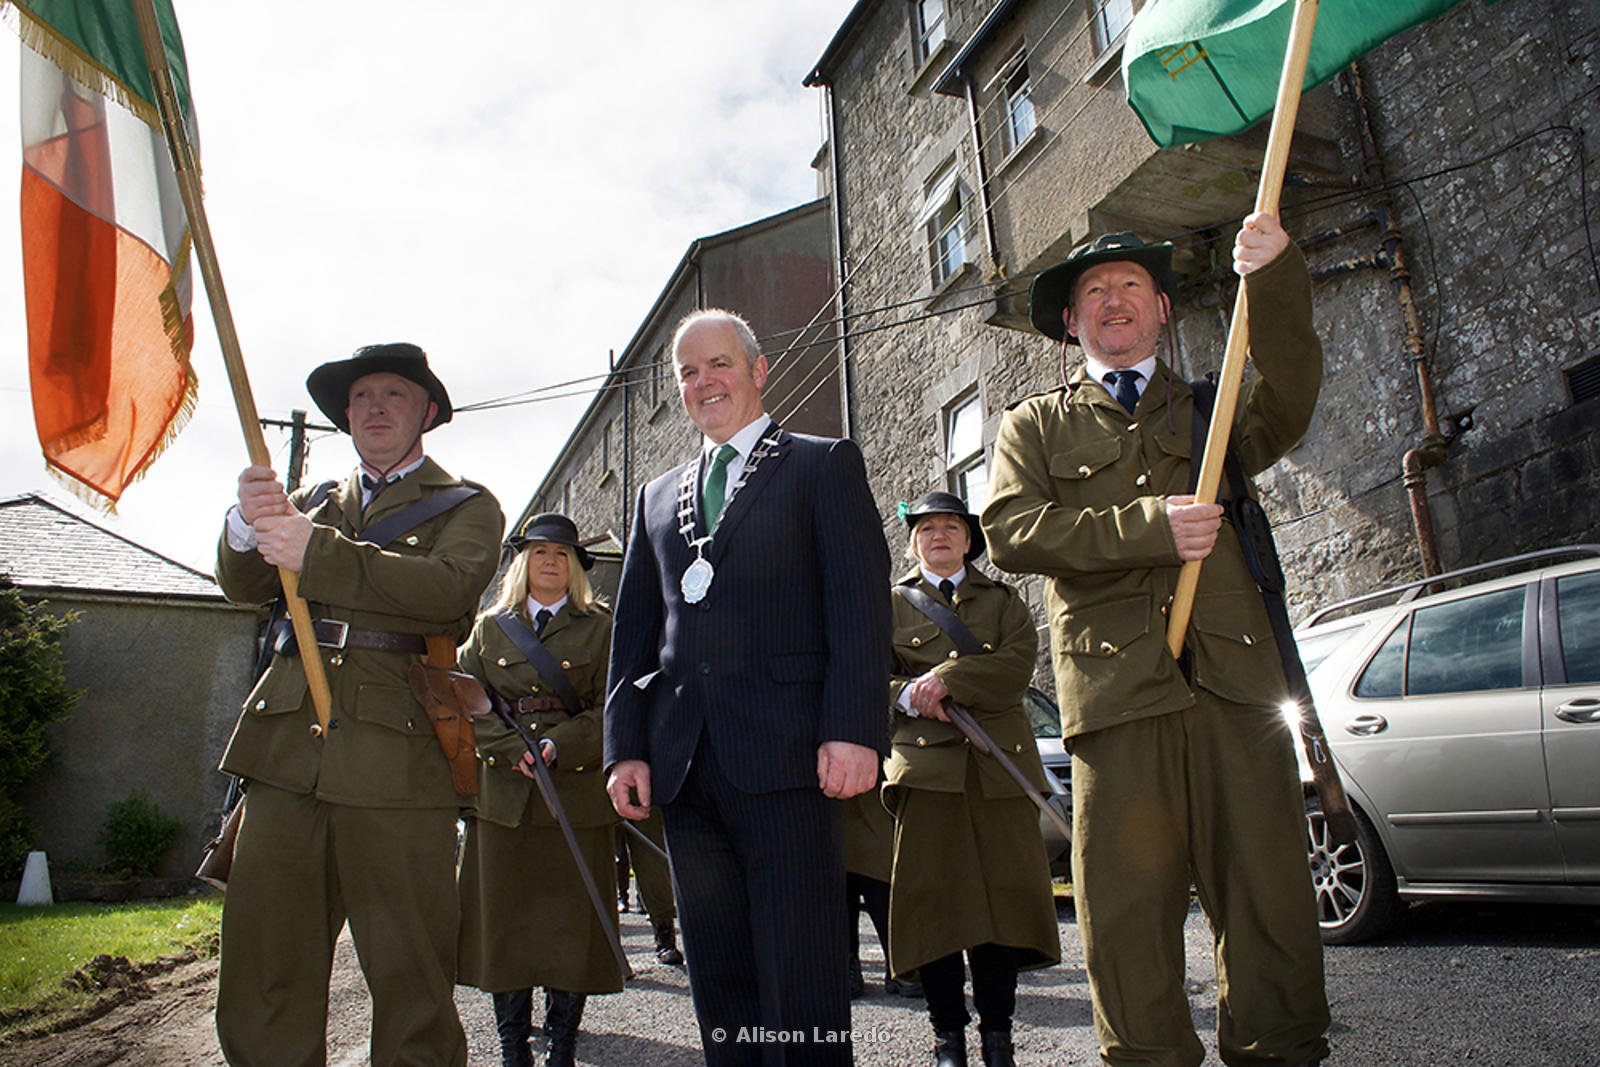 1916 Commemoration, Castlebar PHOTO: ALISON LAREDO